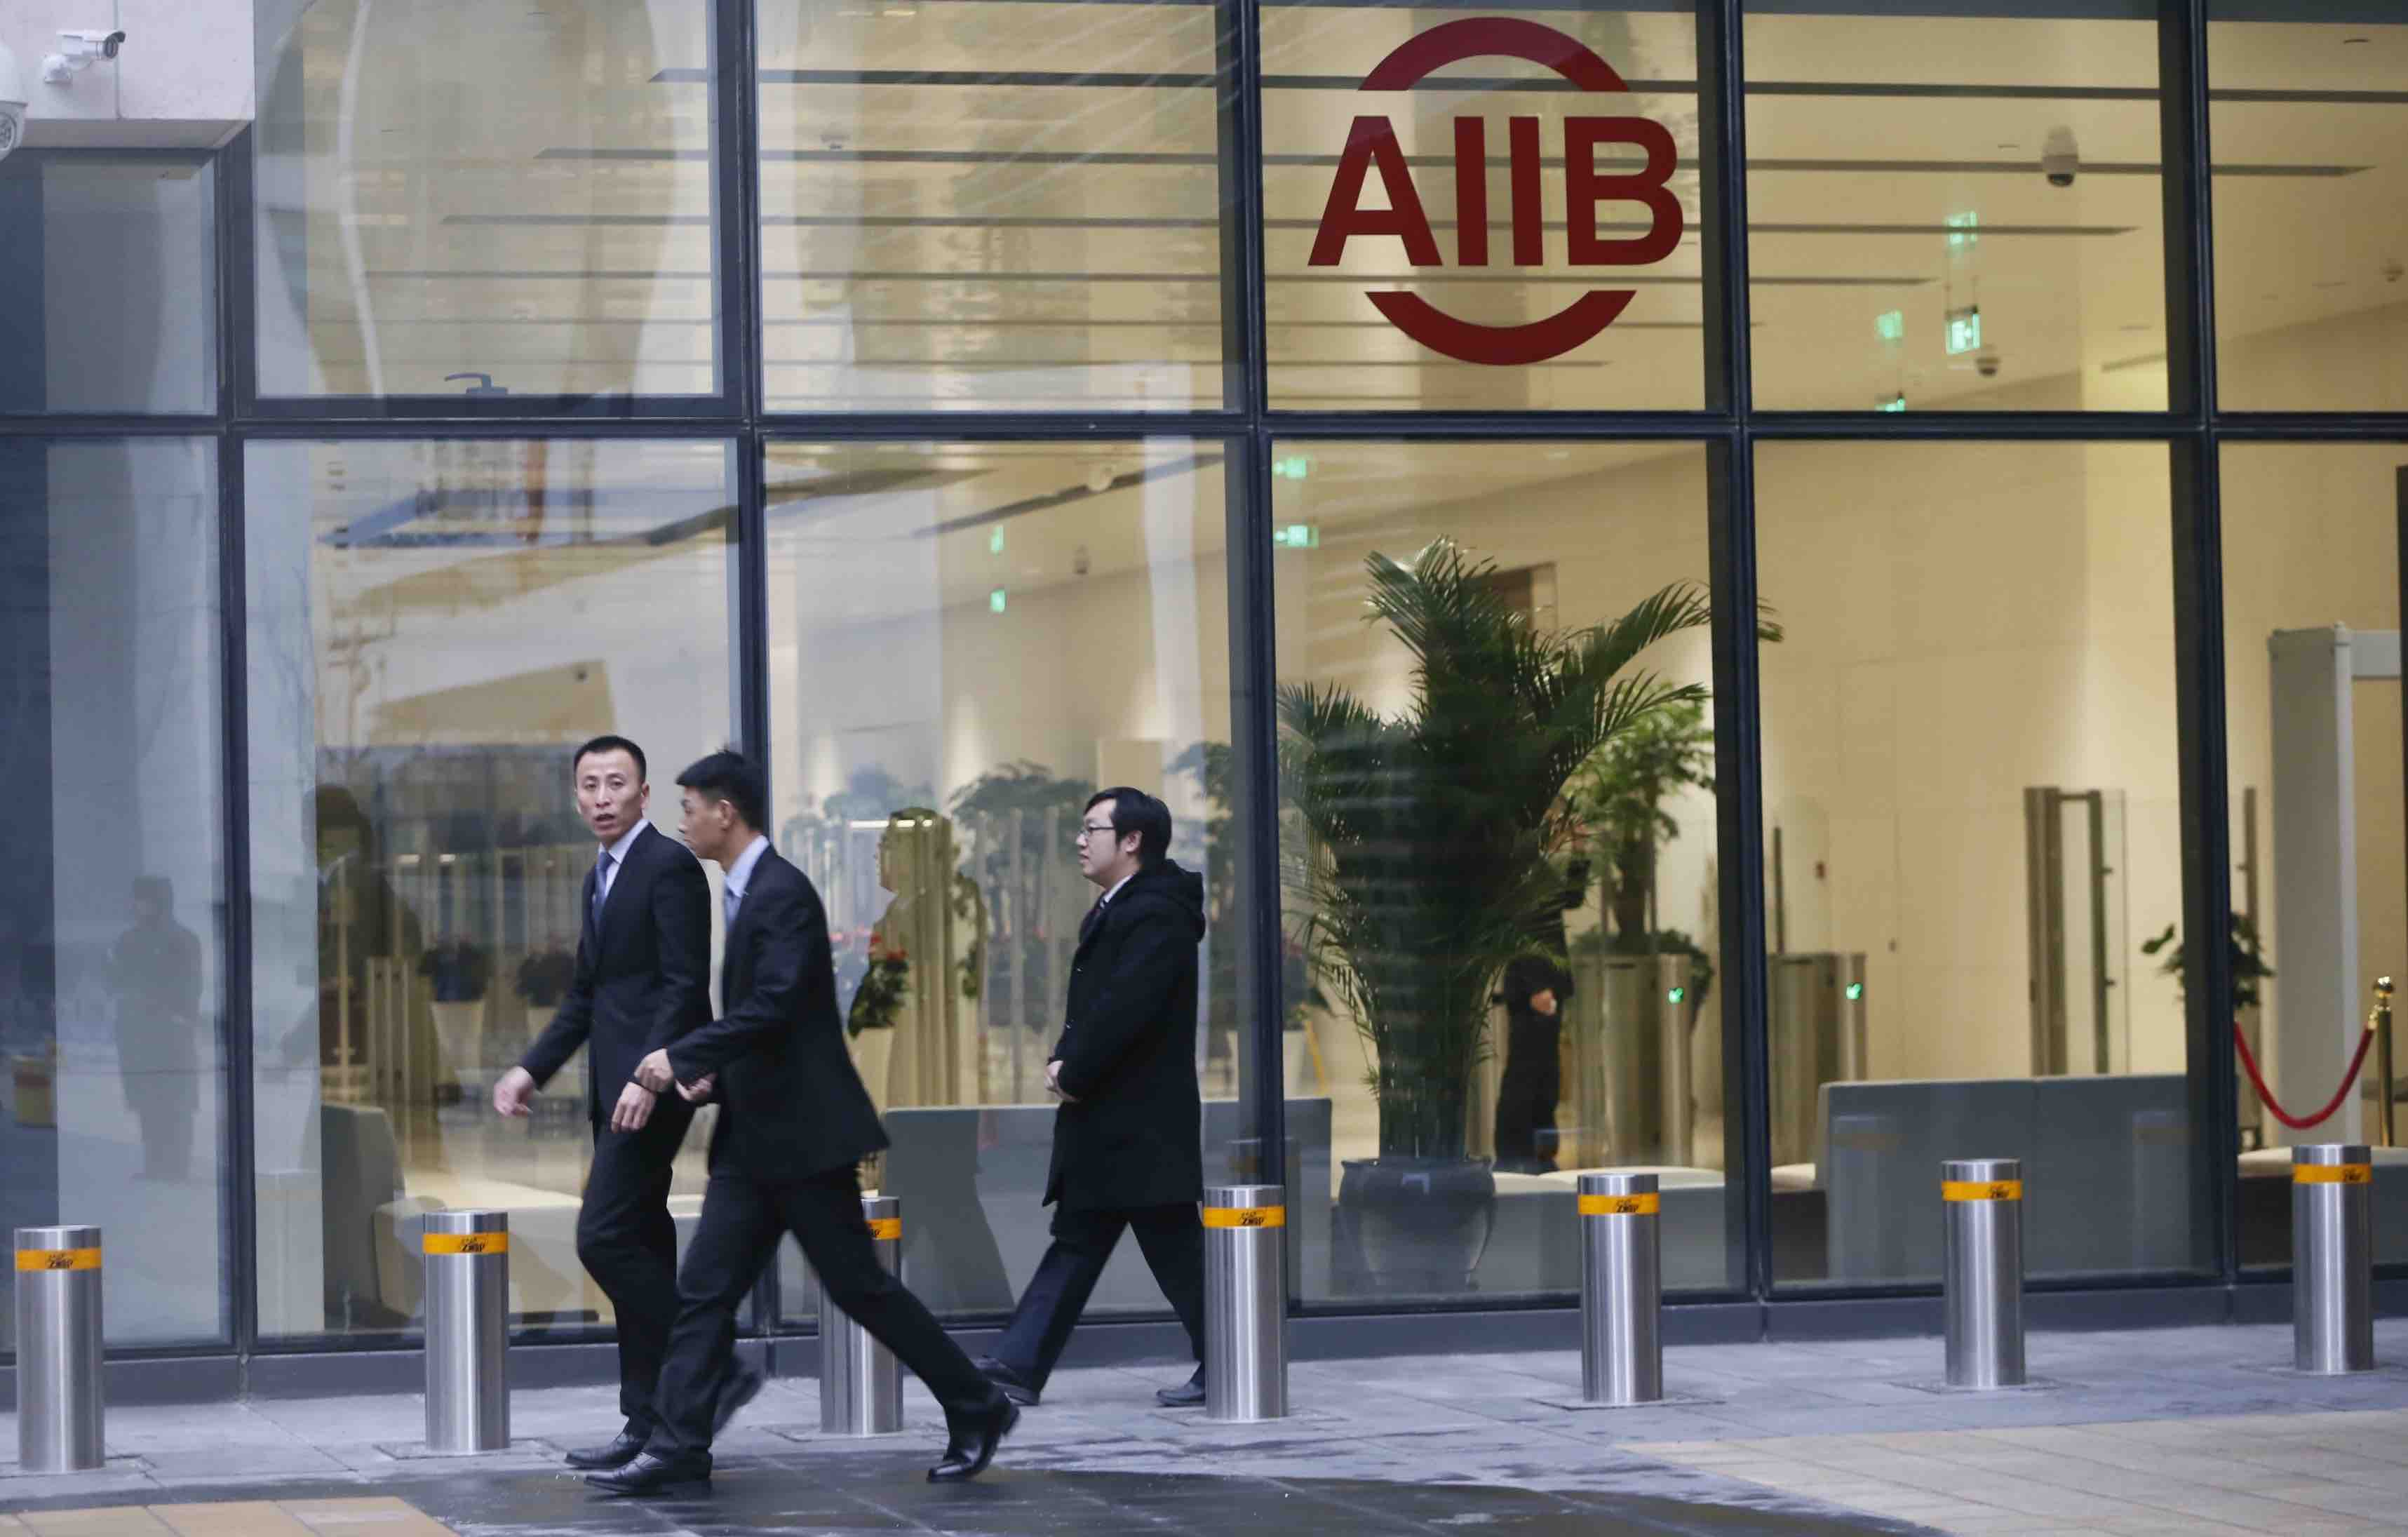 AIIB to convene annual meeting in Middle East next year